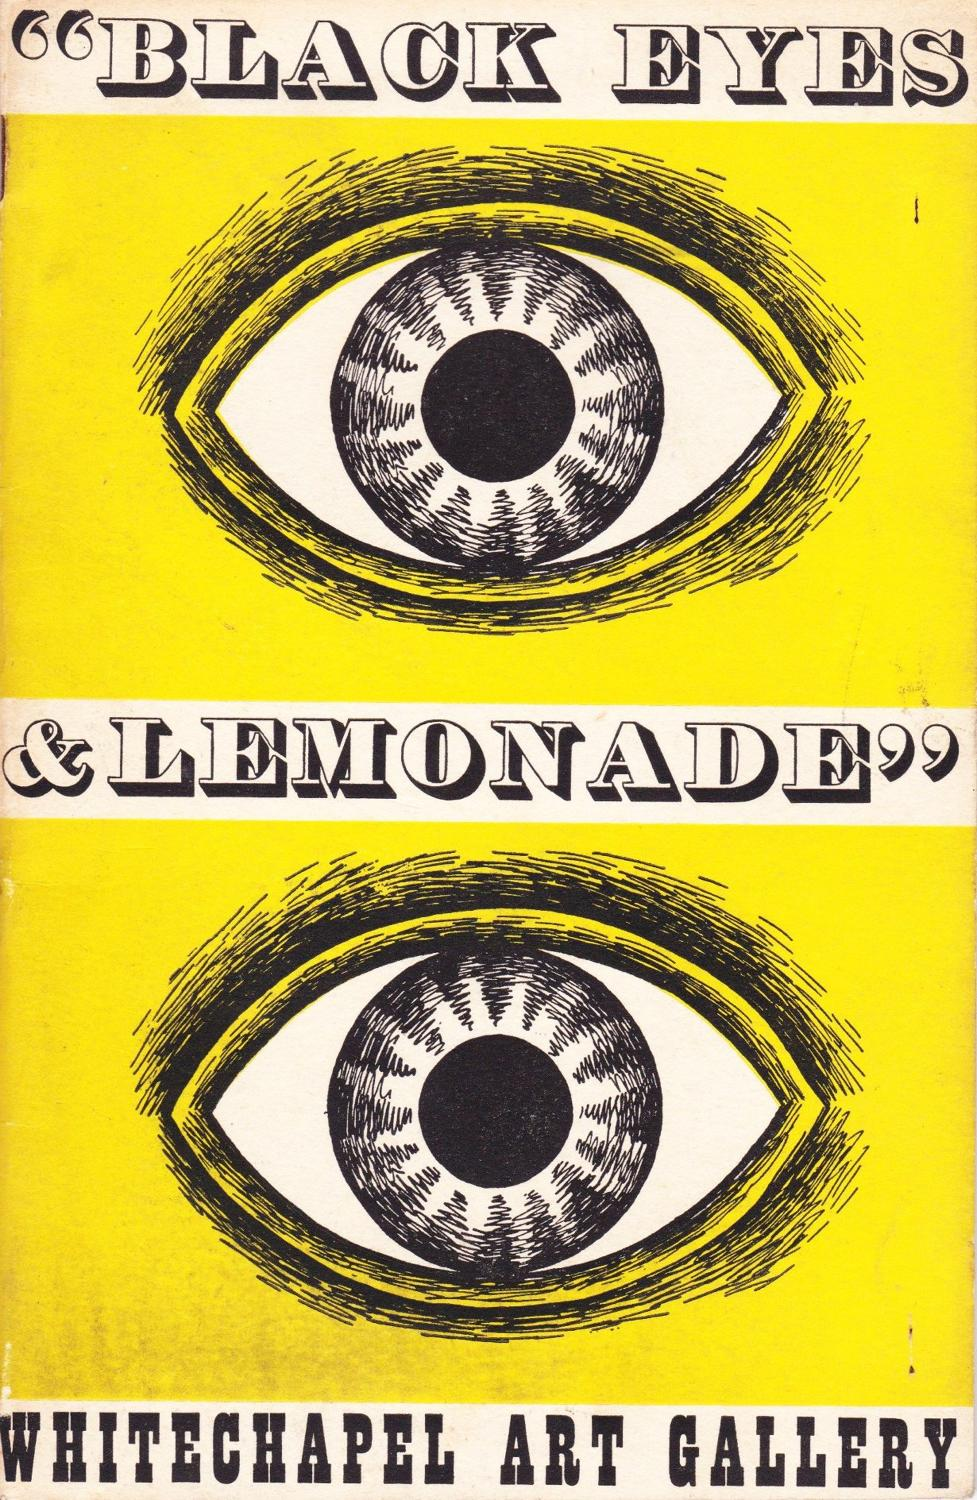 Black Eyes & Lemonade - Original 1951 Festival of Britain Guide